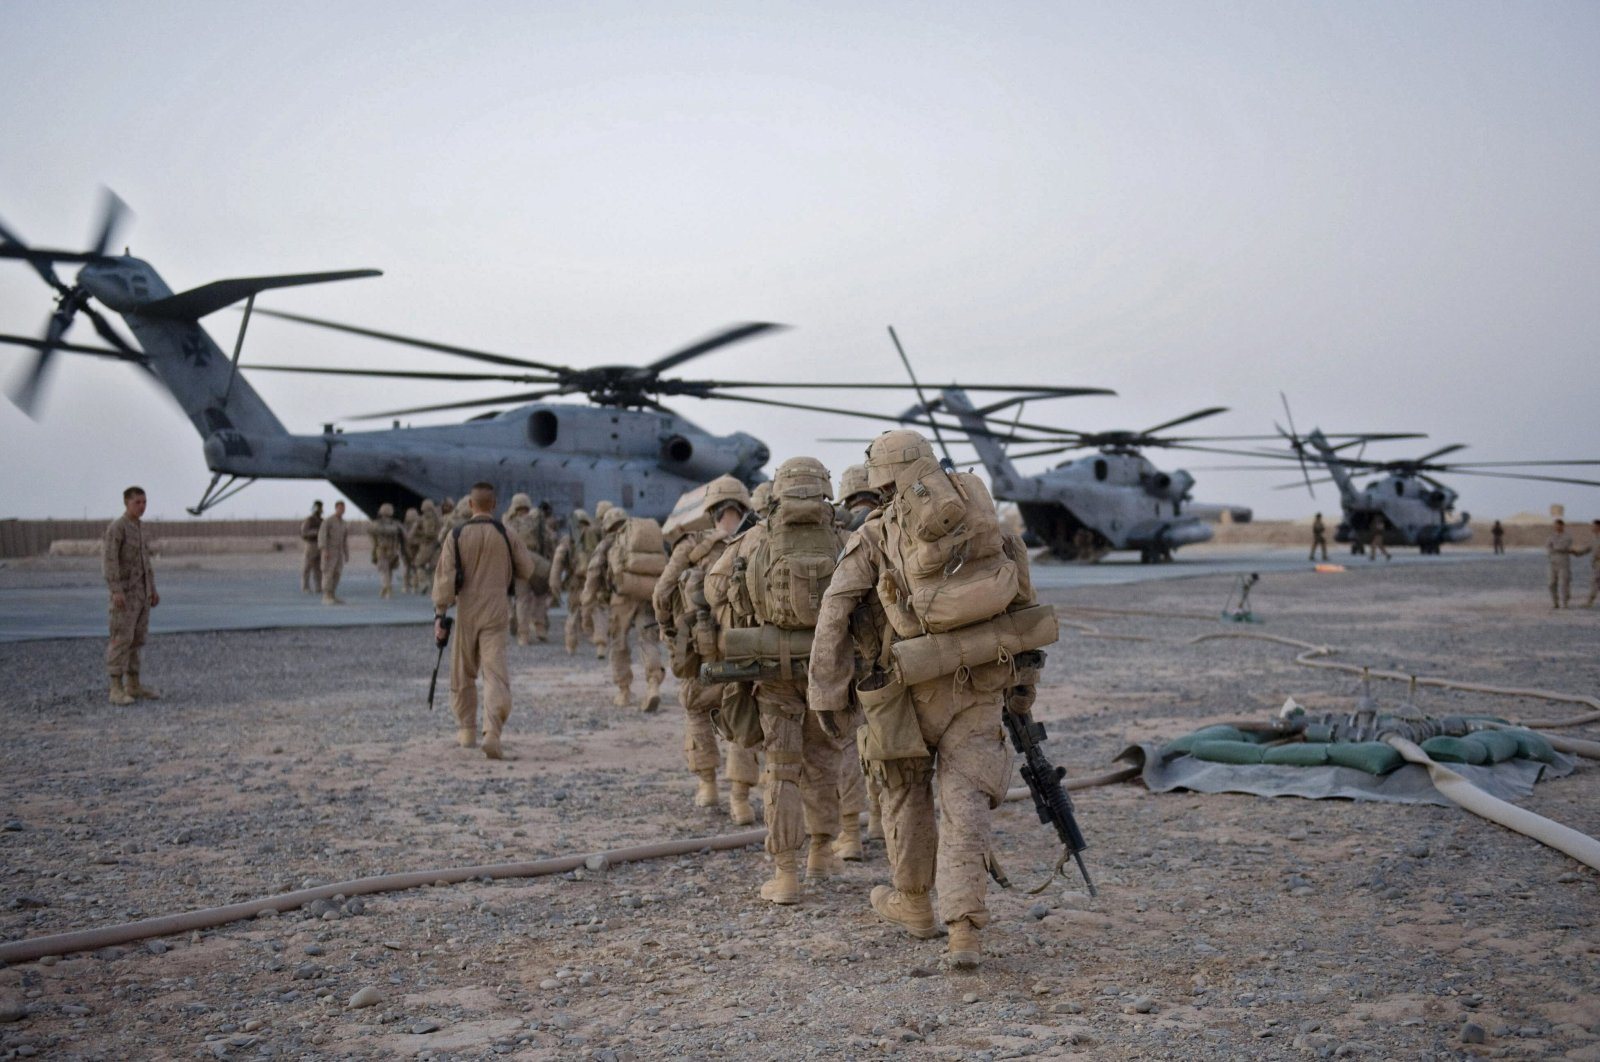 U.S. Marines from the 2nd Battalion, 8th Marine Regiment of the 2nd Marine Expeditionary Brigade walk toward the helicopter as part of Operation Khanjar at Camp Dwyer in Helmand Province in Afghanistan on July 2, 2009.  (AFP Photo)